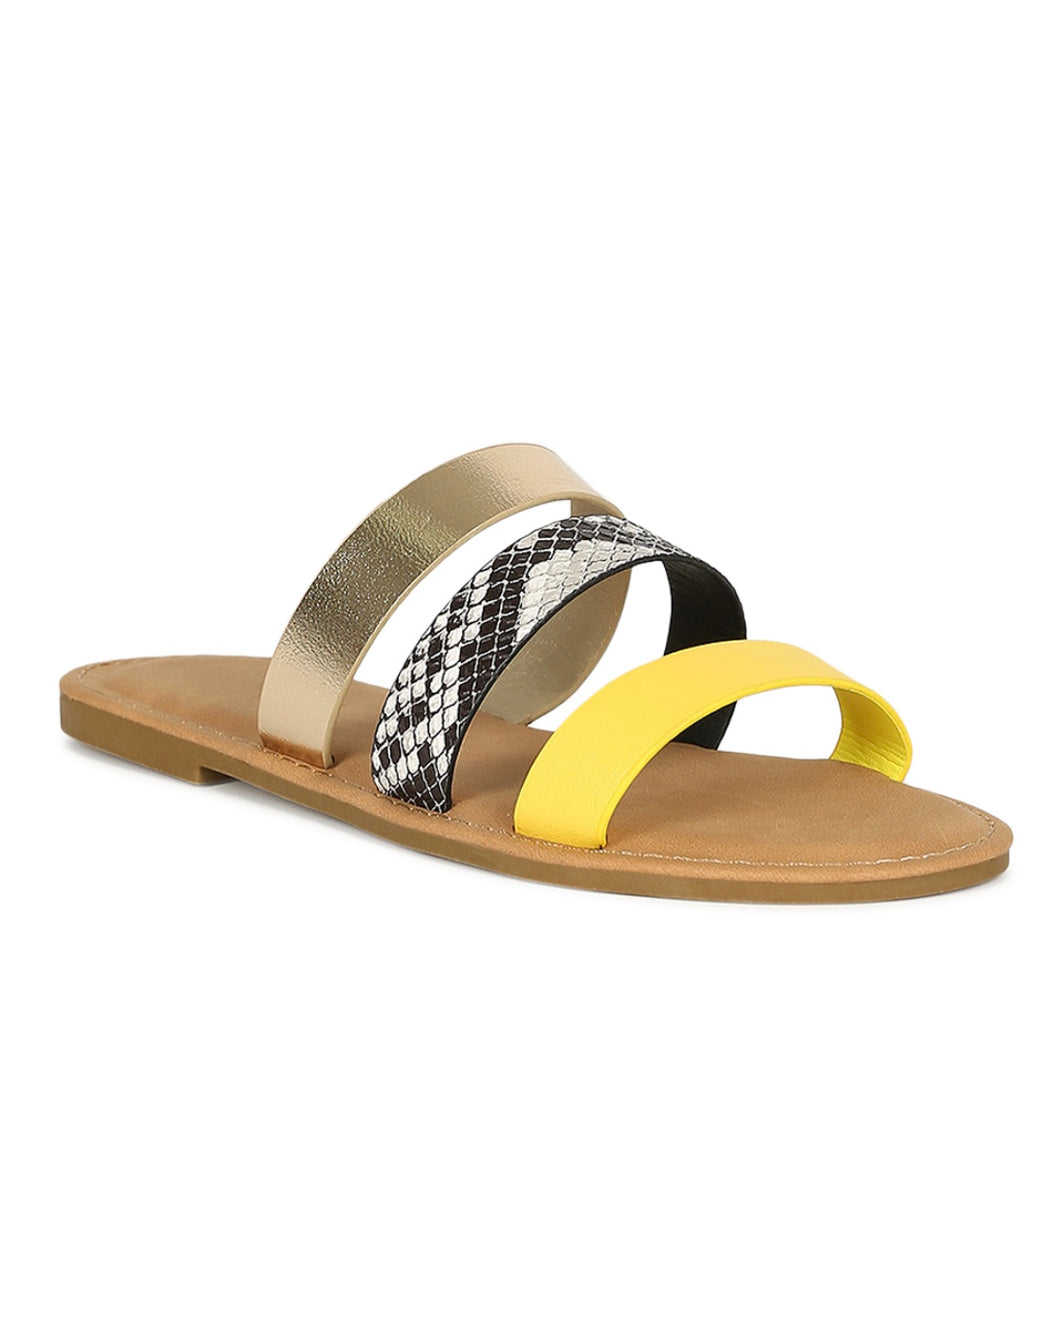 Python/Multi Color Sandals